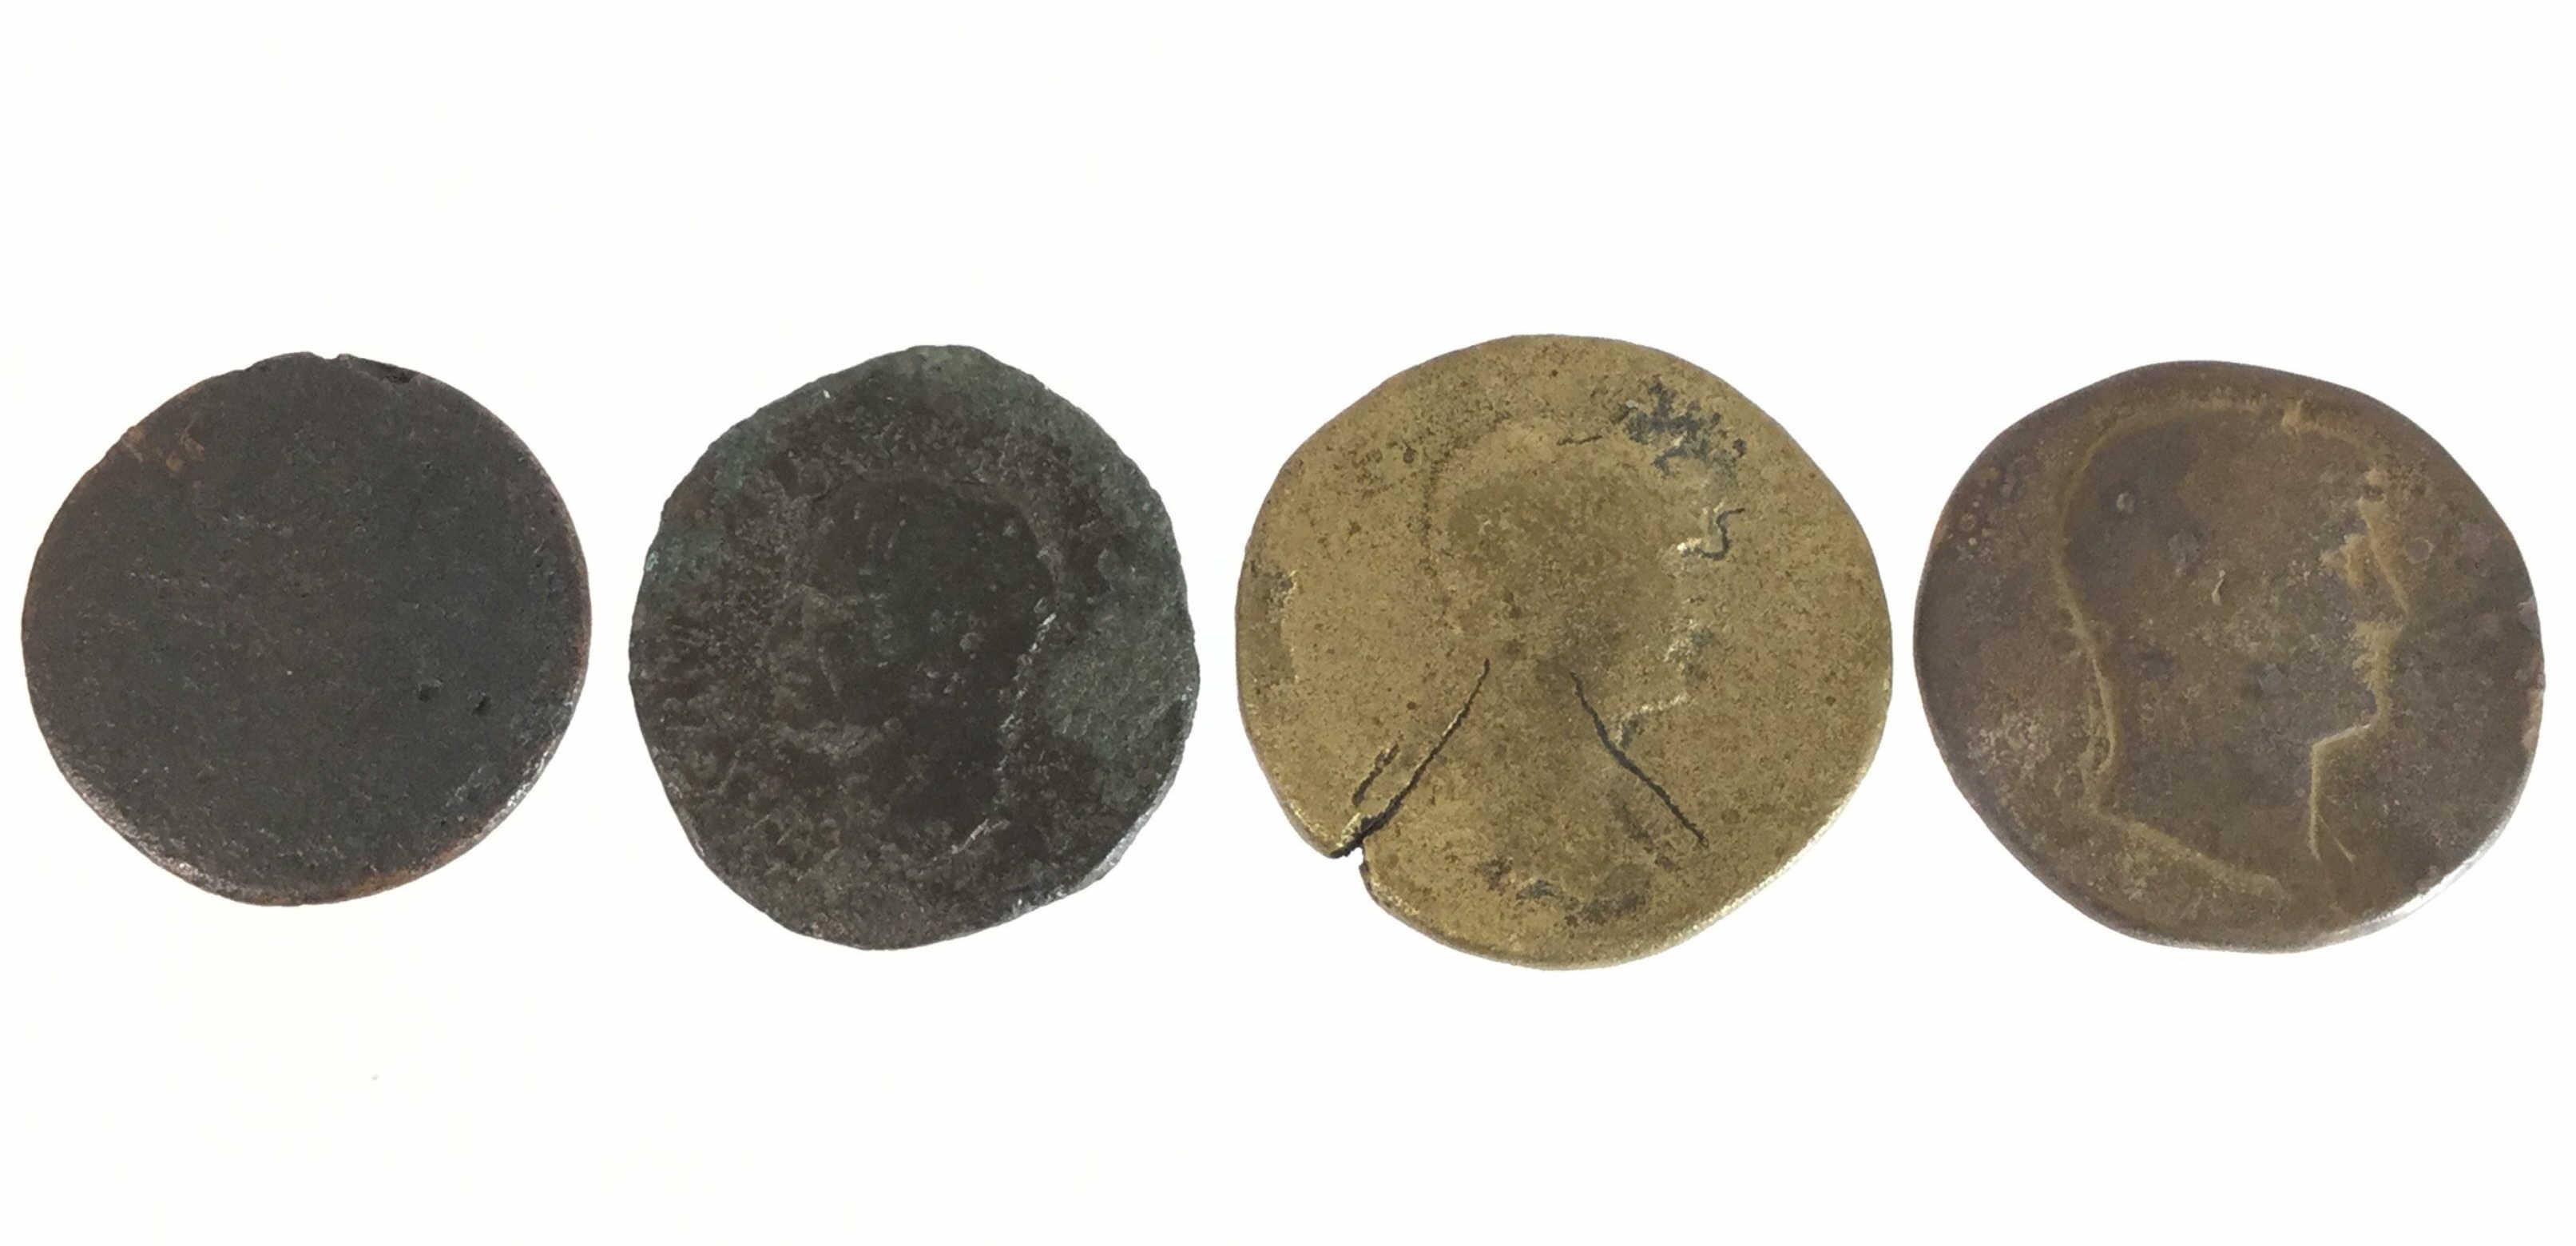 (4) Ancient Coins, Rome, Imperial, Sesterius